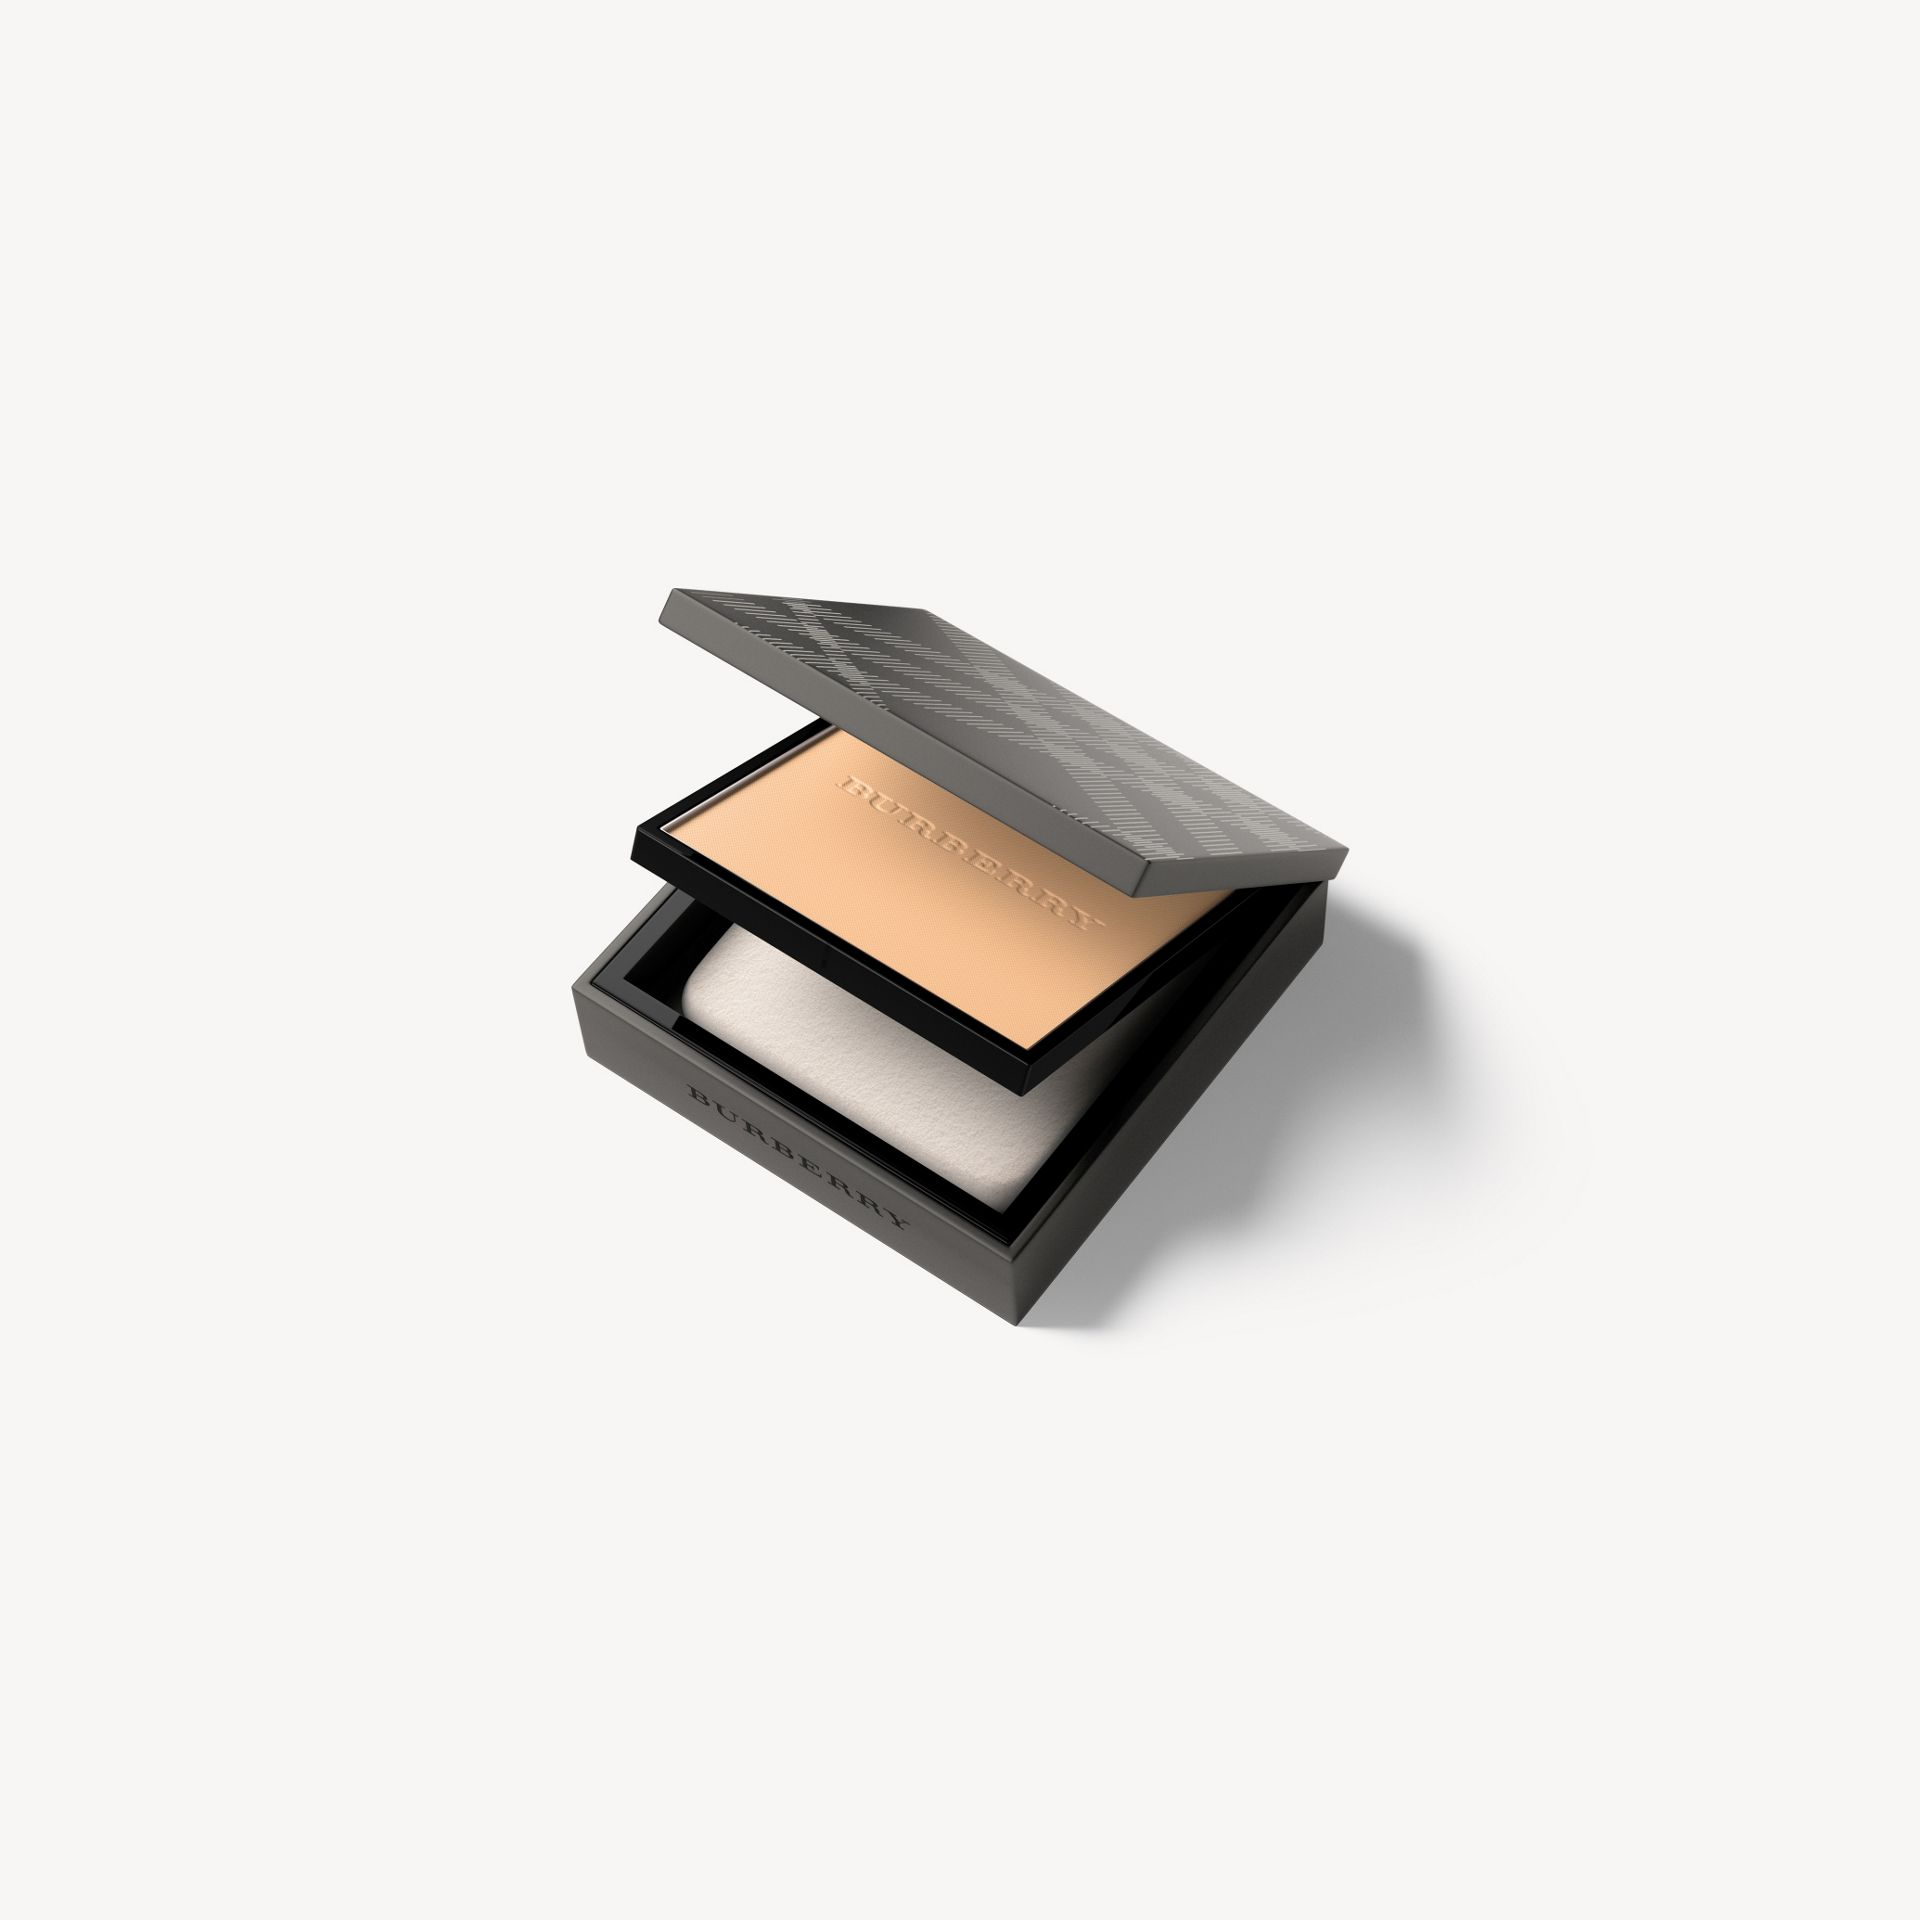 Burberry Cashmere Compact – Light Honey No.10 - photo de la galerie 1